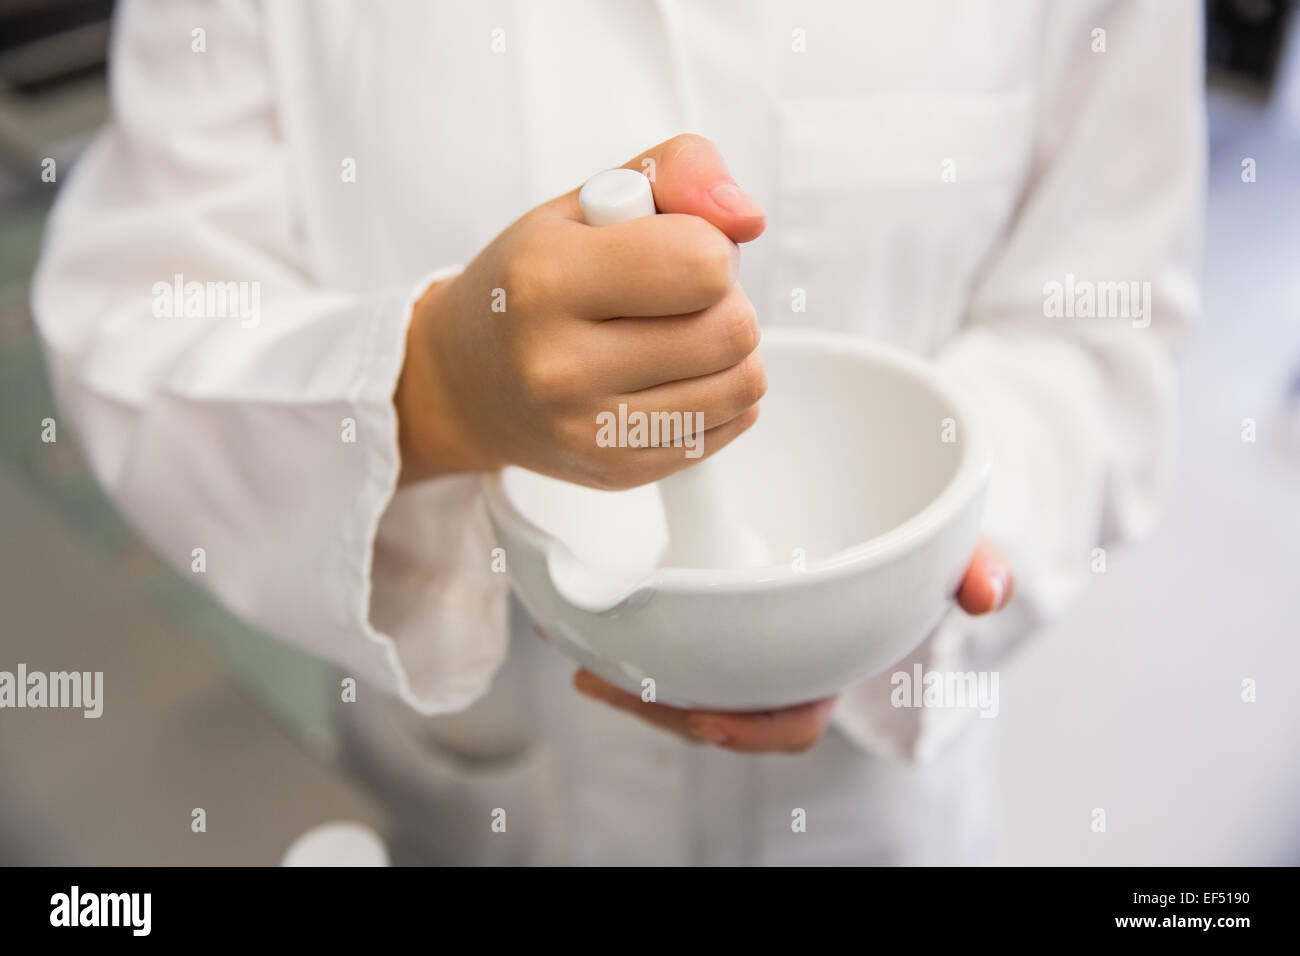 Junior pharmacist mixing a medicine - Stock Image